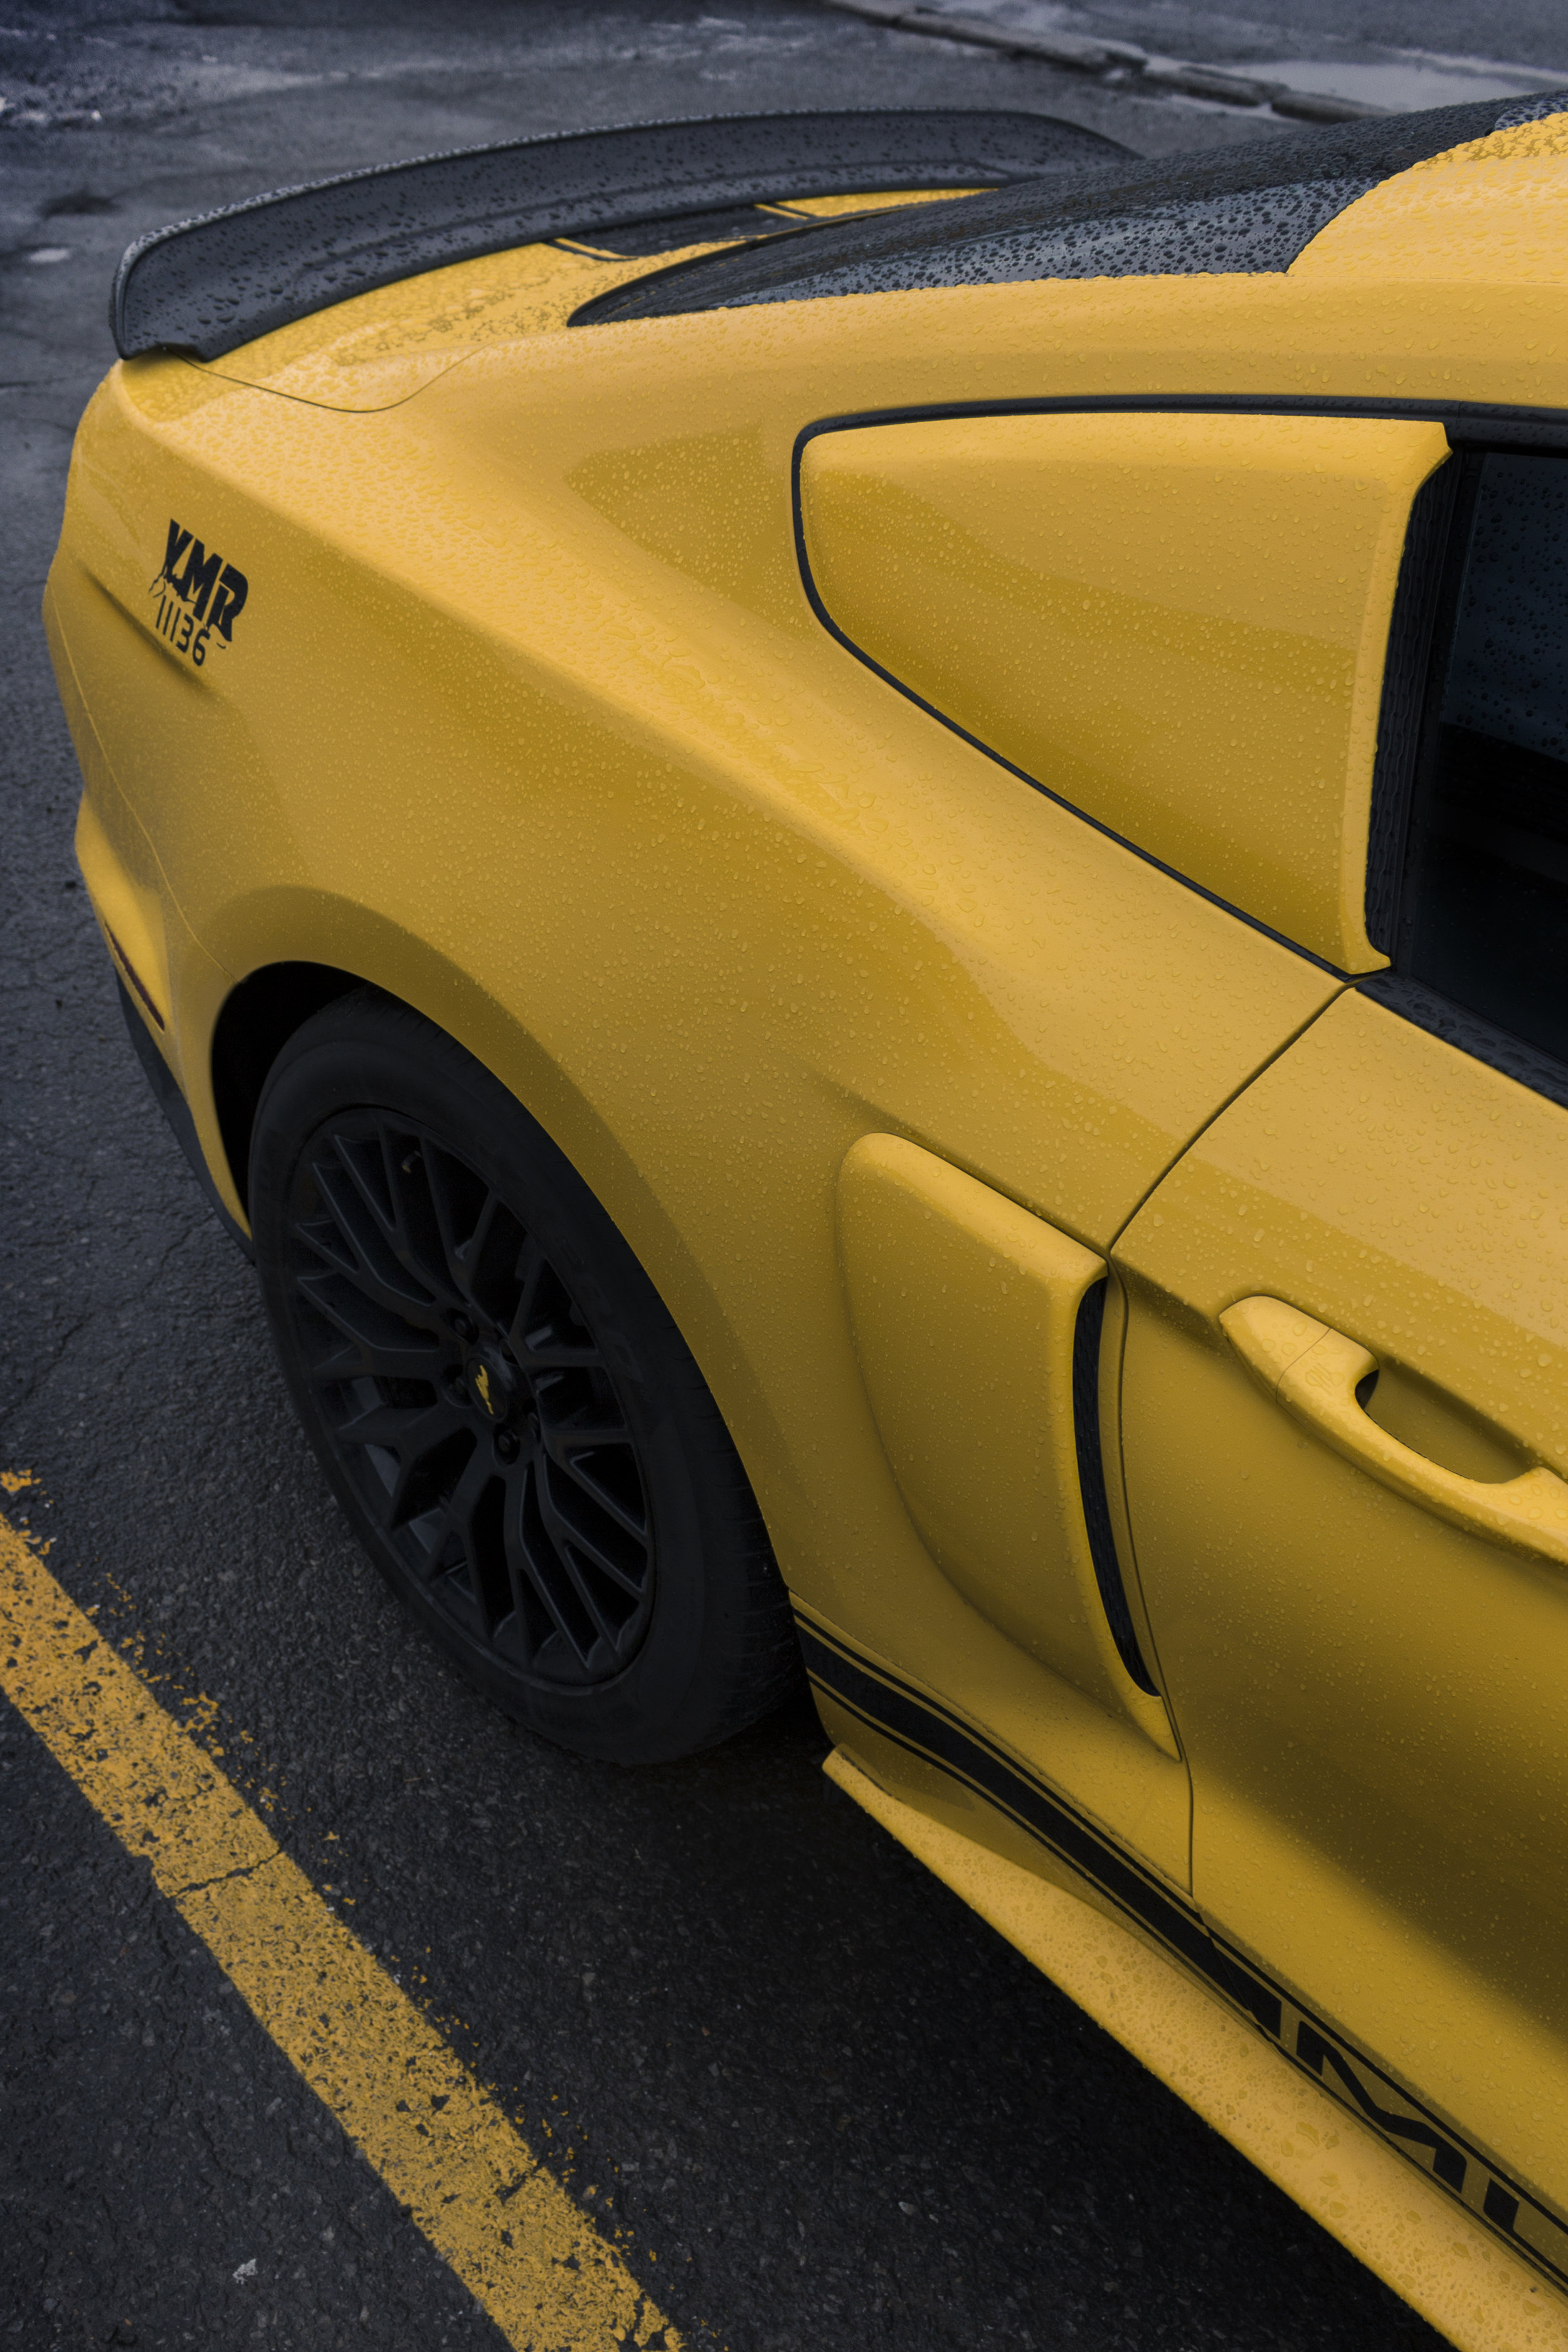 Colour-Matched 2018 2017 2016 ford Mustang GT aero by Sketchs Ink Custom Paint Ottawa Canada Online